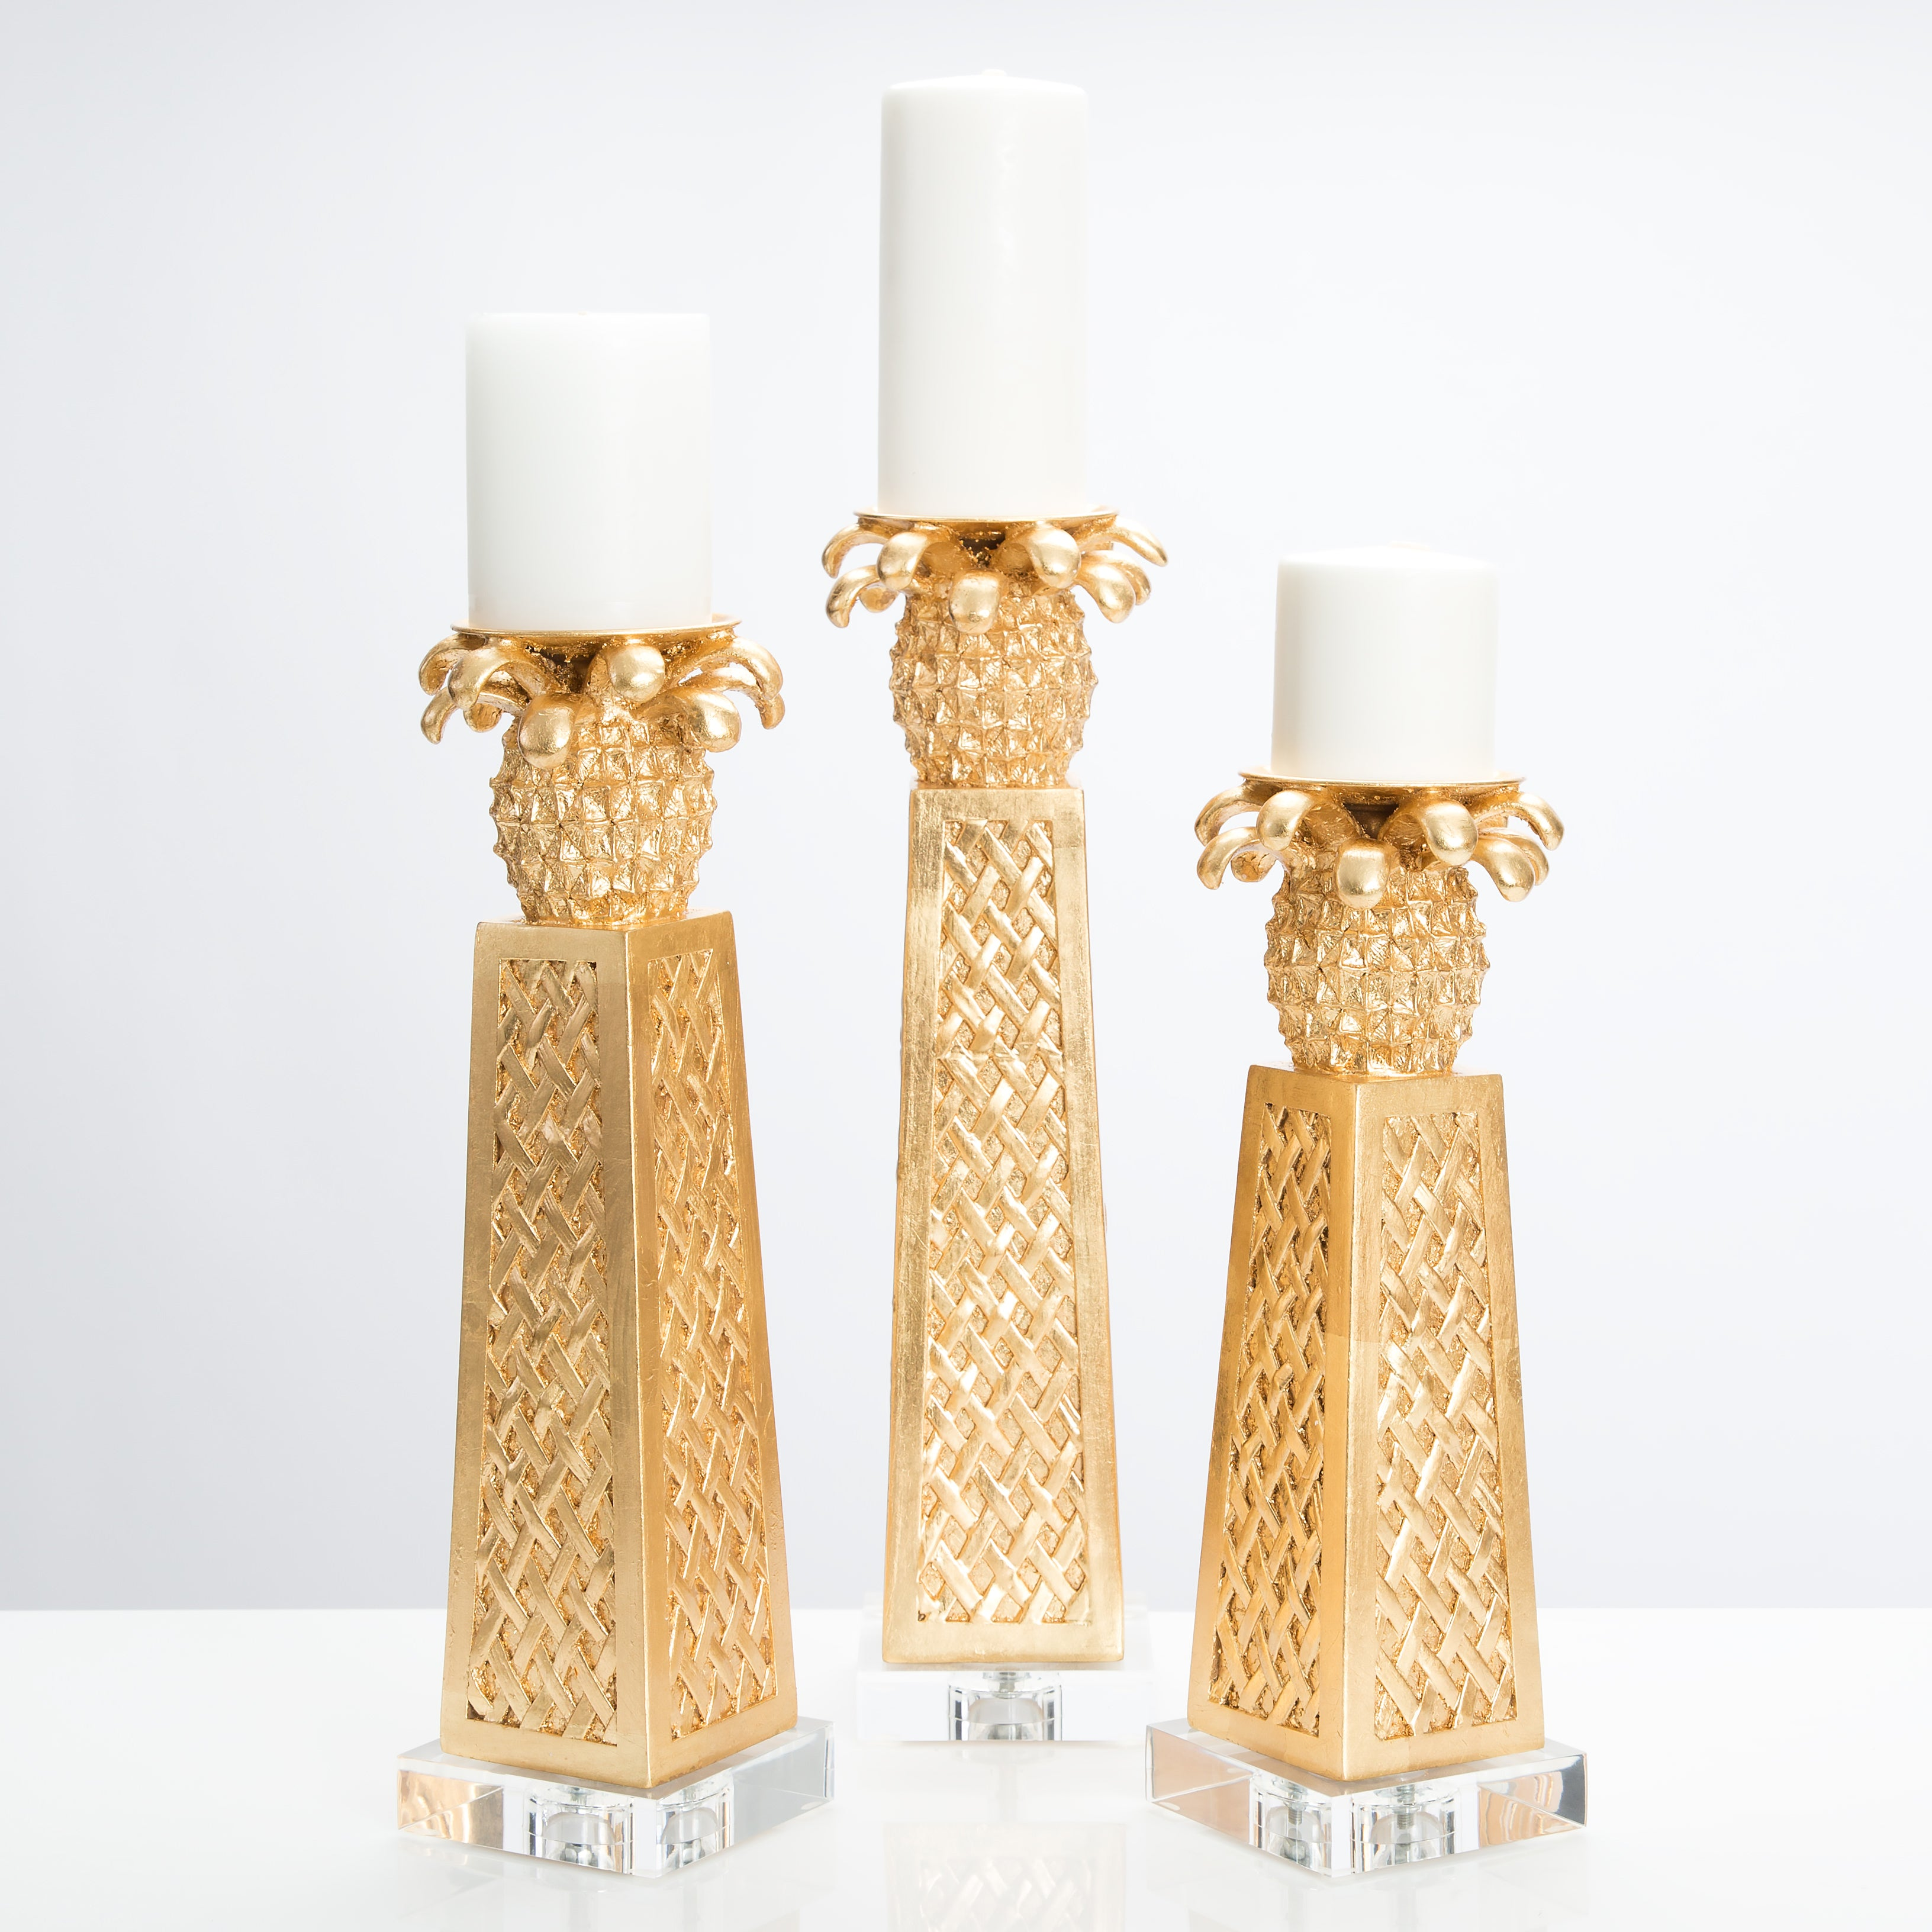 Golden Pineapple Candleholders [Set of 3] - Couture Lamps